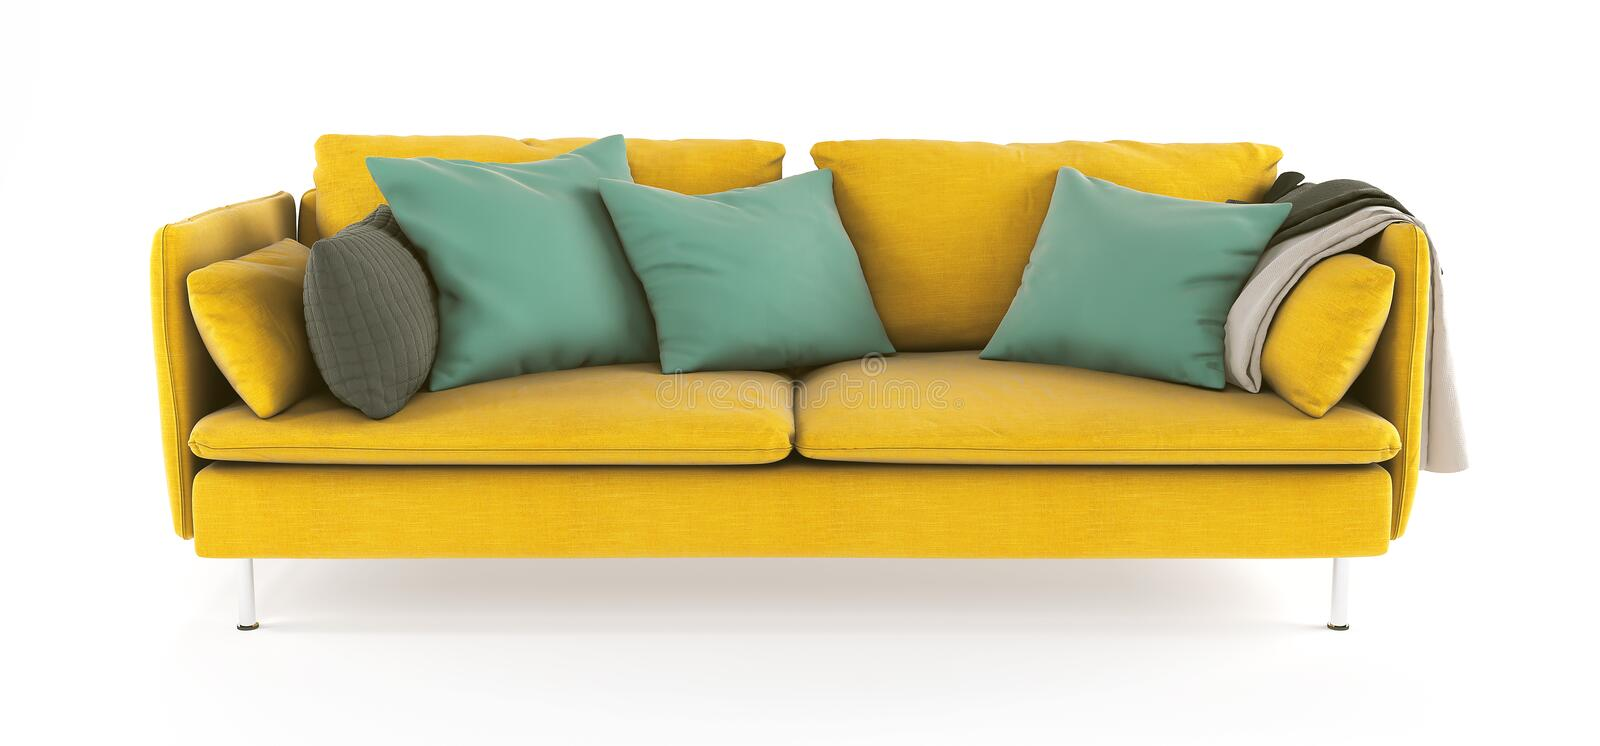 Modern scandinavian yellow sofa with legs with emerald green pillows and plaid on isolated white background. Furniture, interior royalty free stock photo